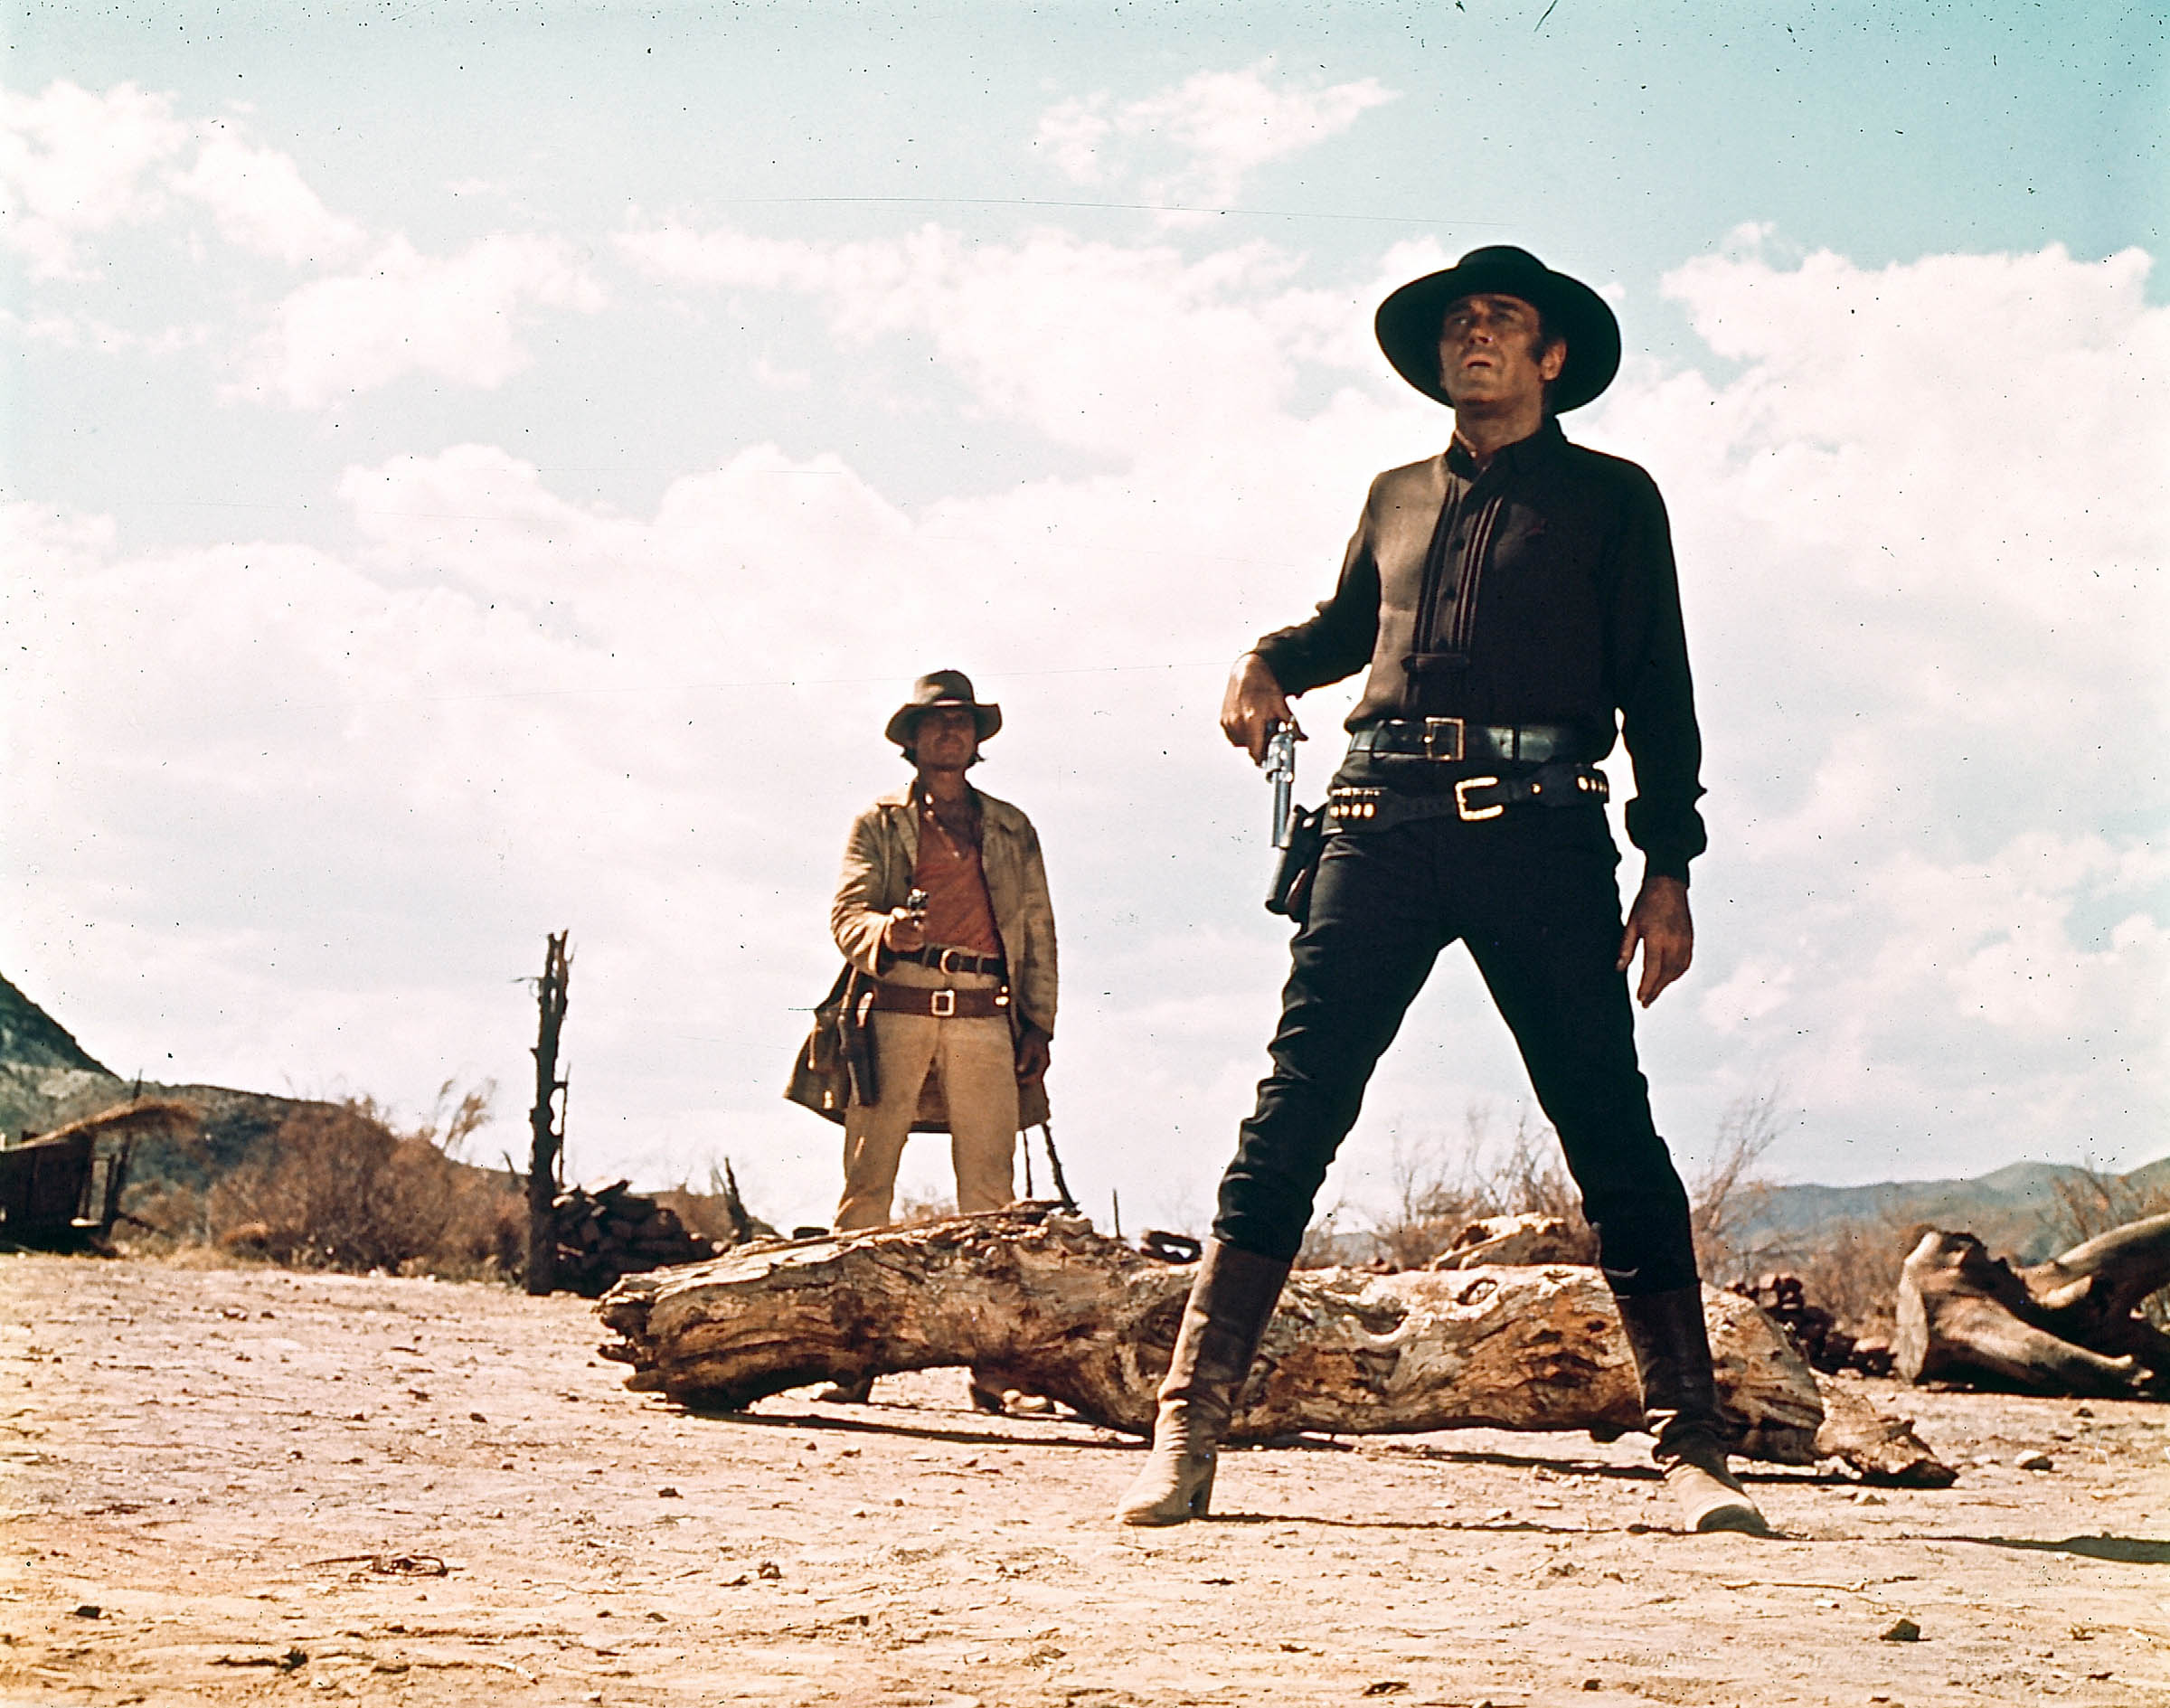 duello spaghetti western all'italiana